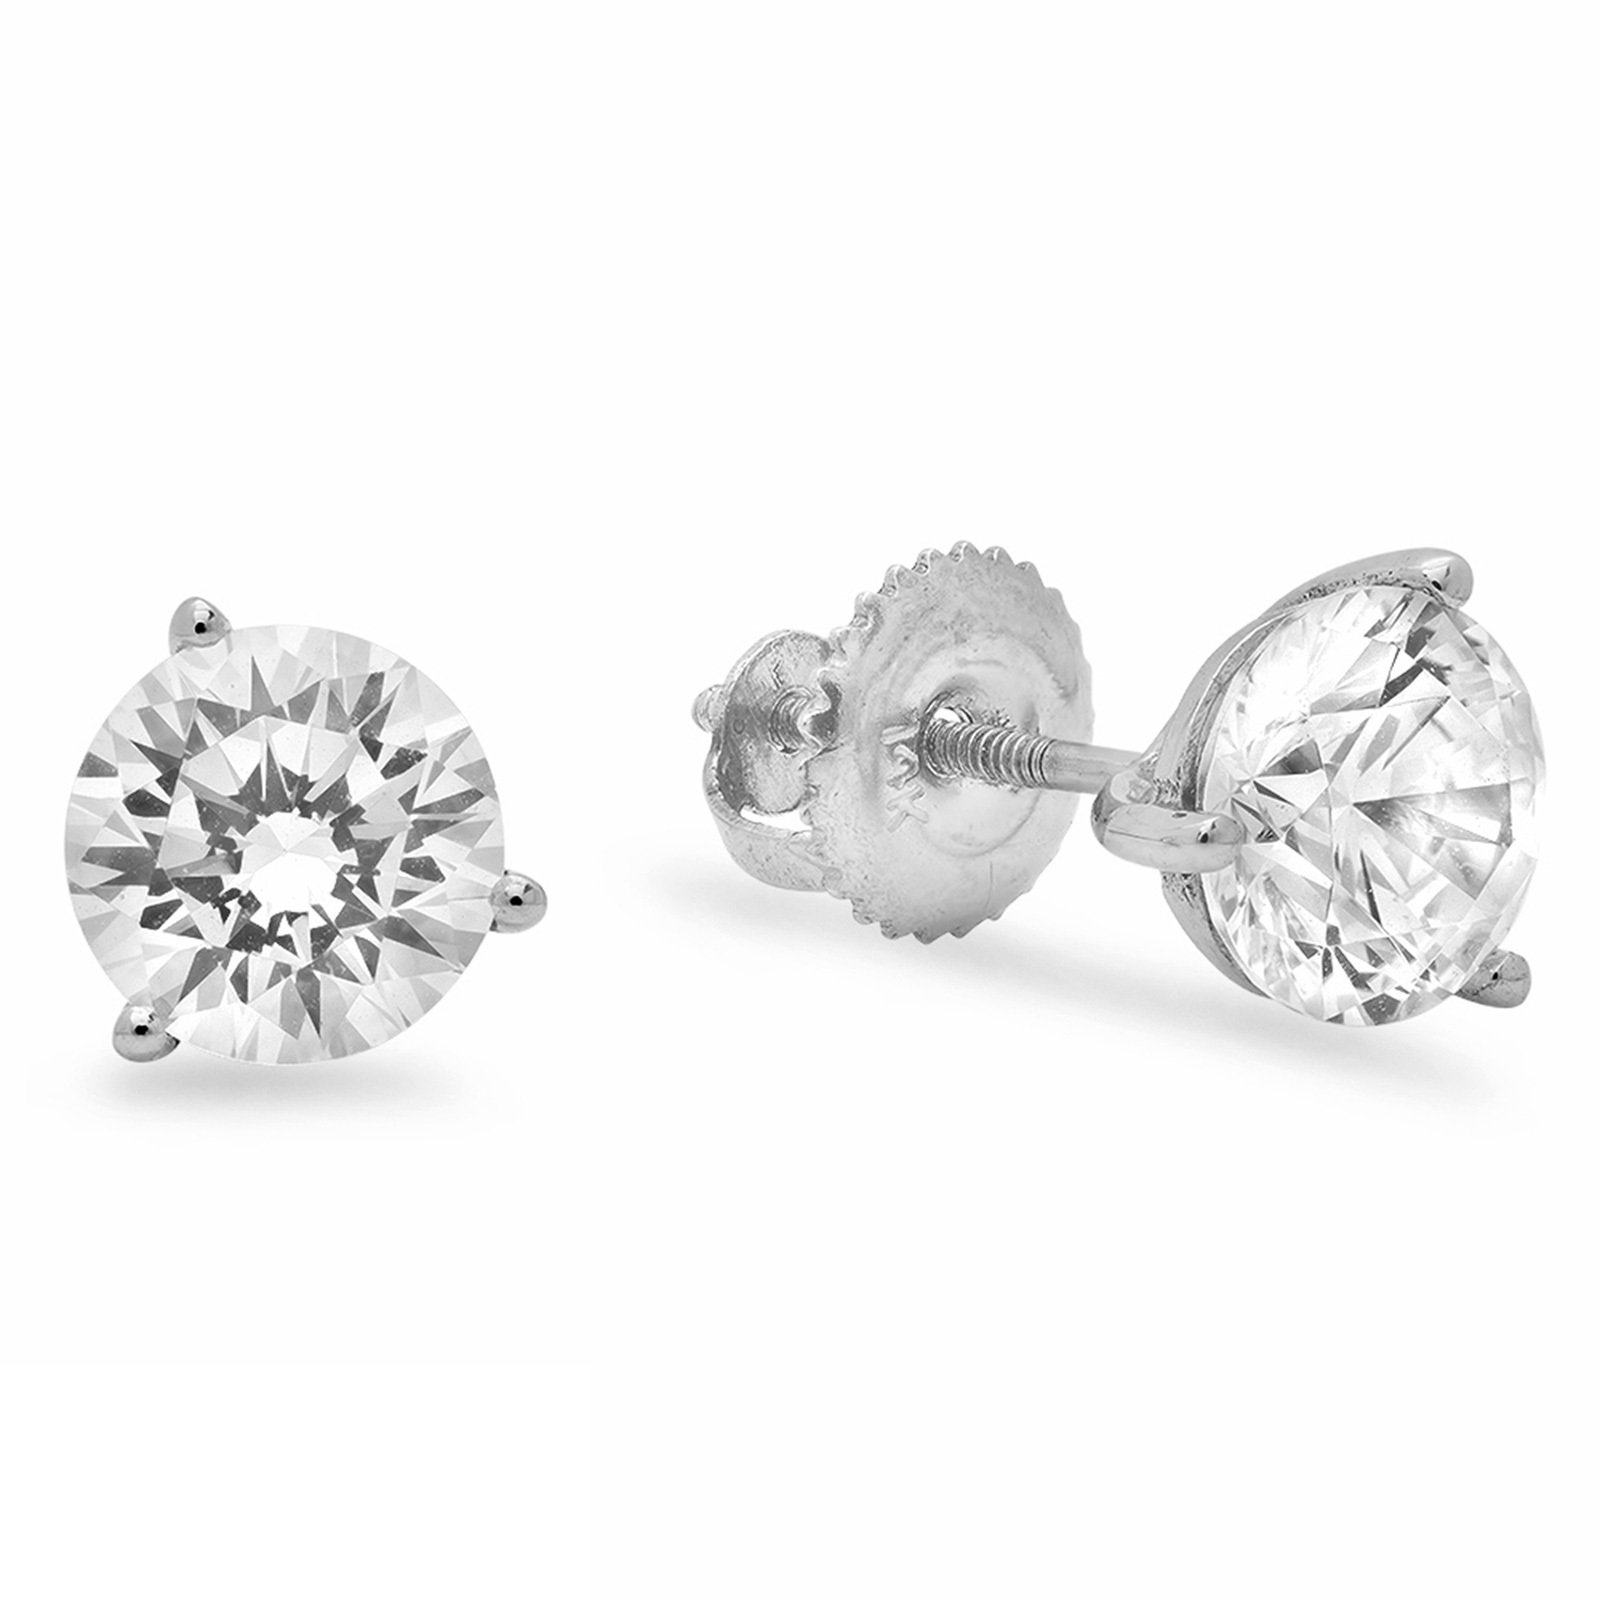 1.50 ct Brilliant Round Cut Solitaire Highest Quality Moissanite Anniversary gift 3-prong Stud Martini Earrings Real Solid 14k White Gold Screw Back